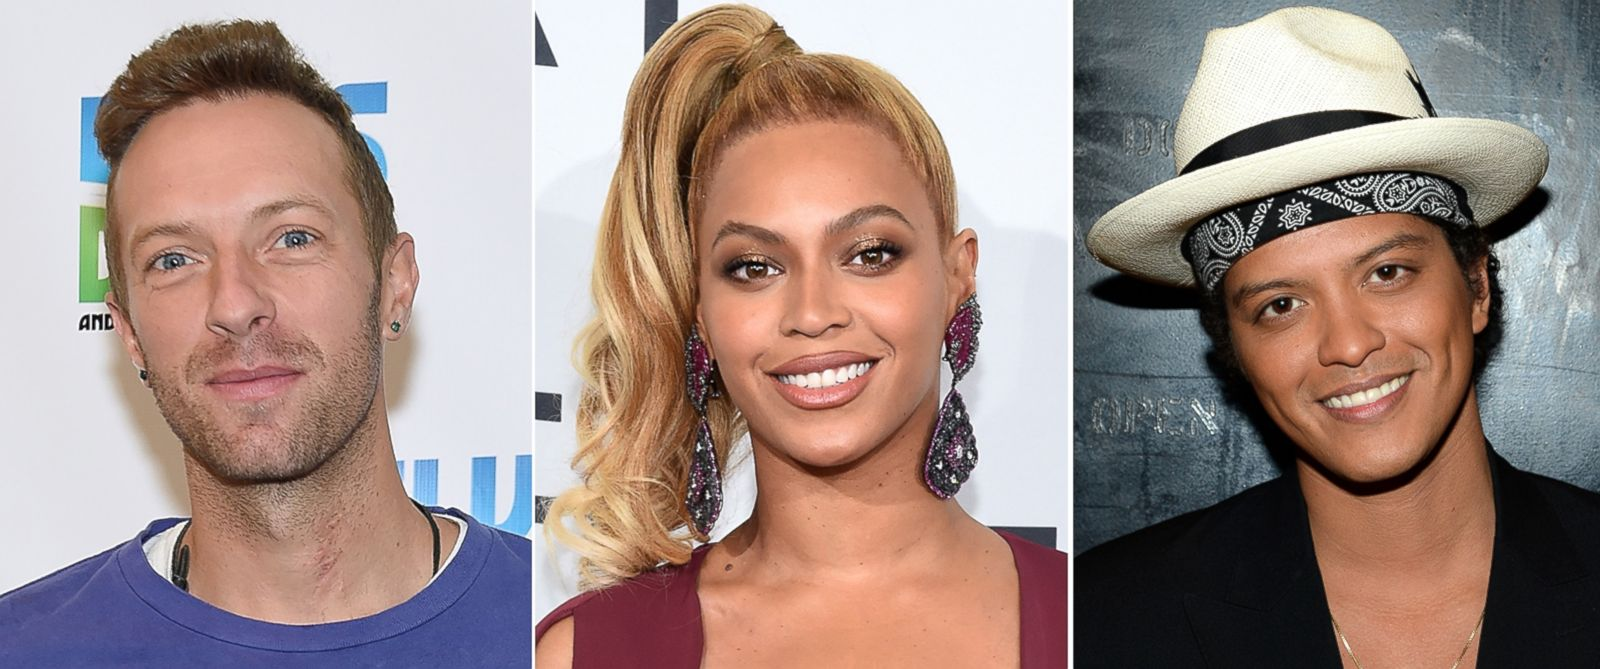 PHOTO: Pictured (L-R) are Chris Martin of Coldplay in New York City, Nov. 24, 2015, Beyonce in New York City, Oct. 20, 2015 and Bruno Mars in Washington, Dec. 7, 2014.